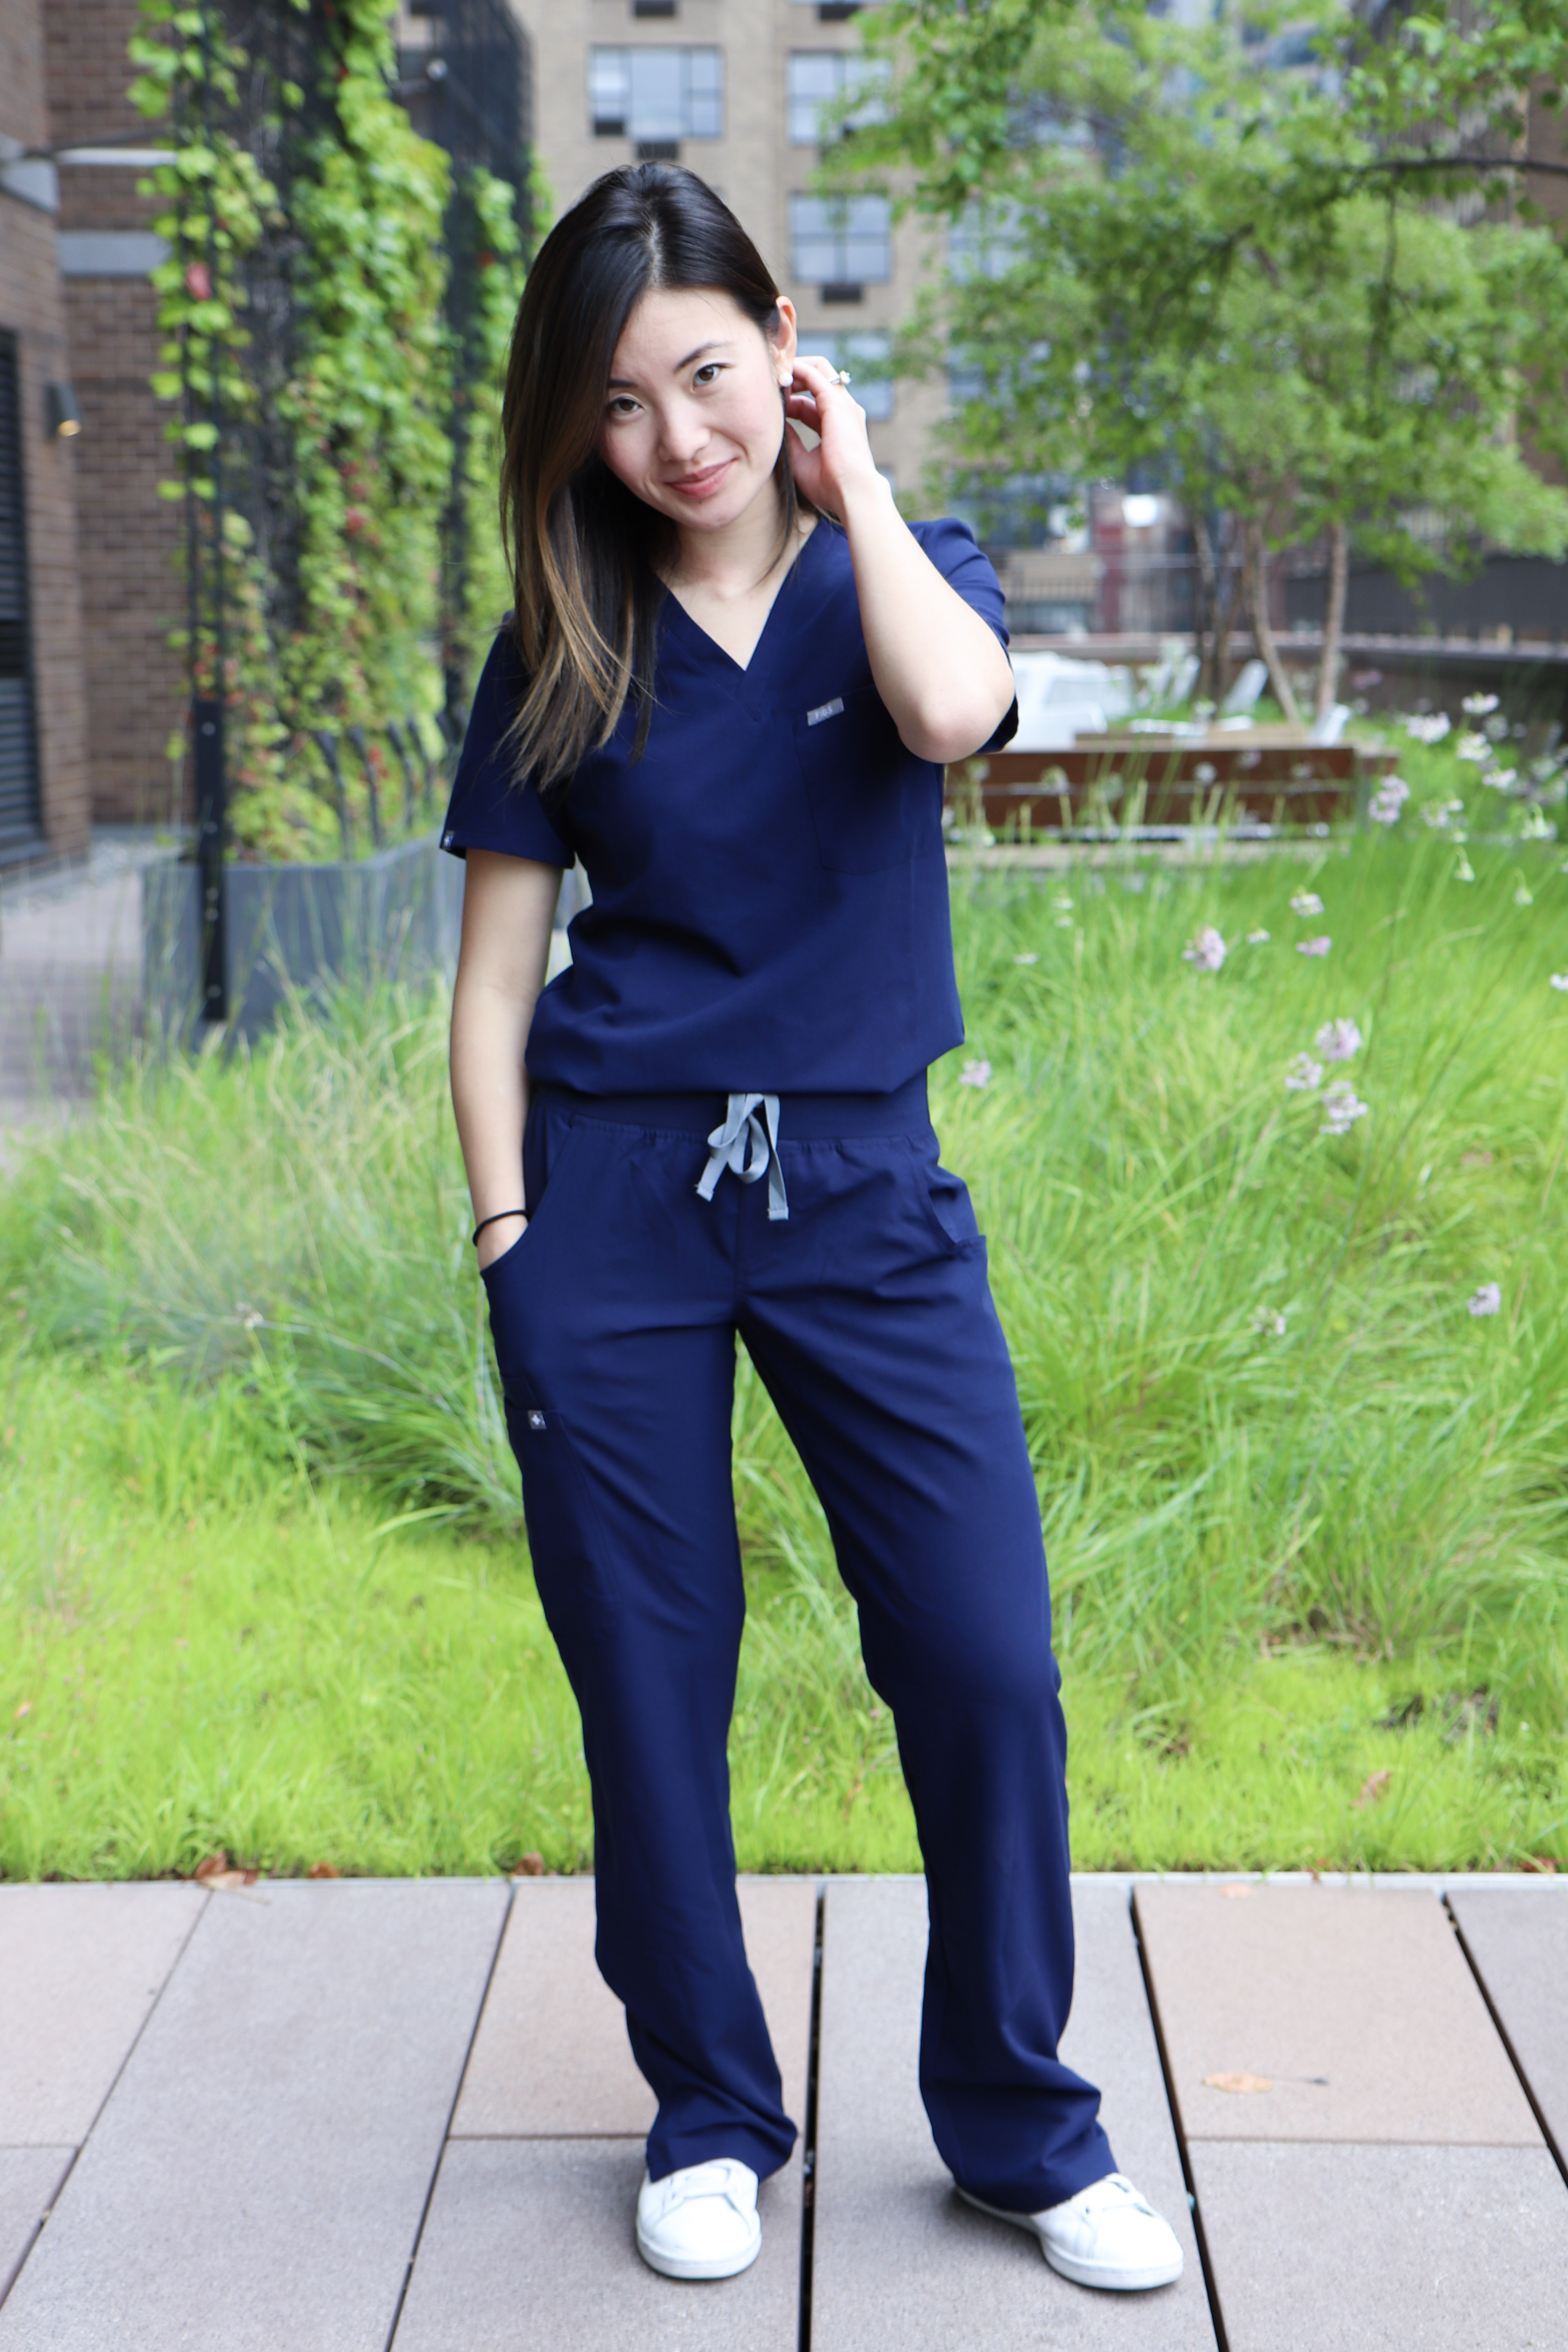 bfa47b35c8a Review: FIGS Scrubs > The Vibrant Med